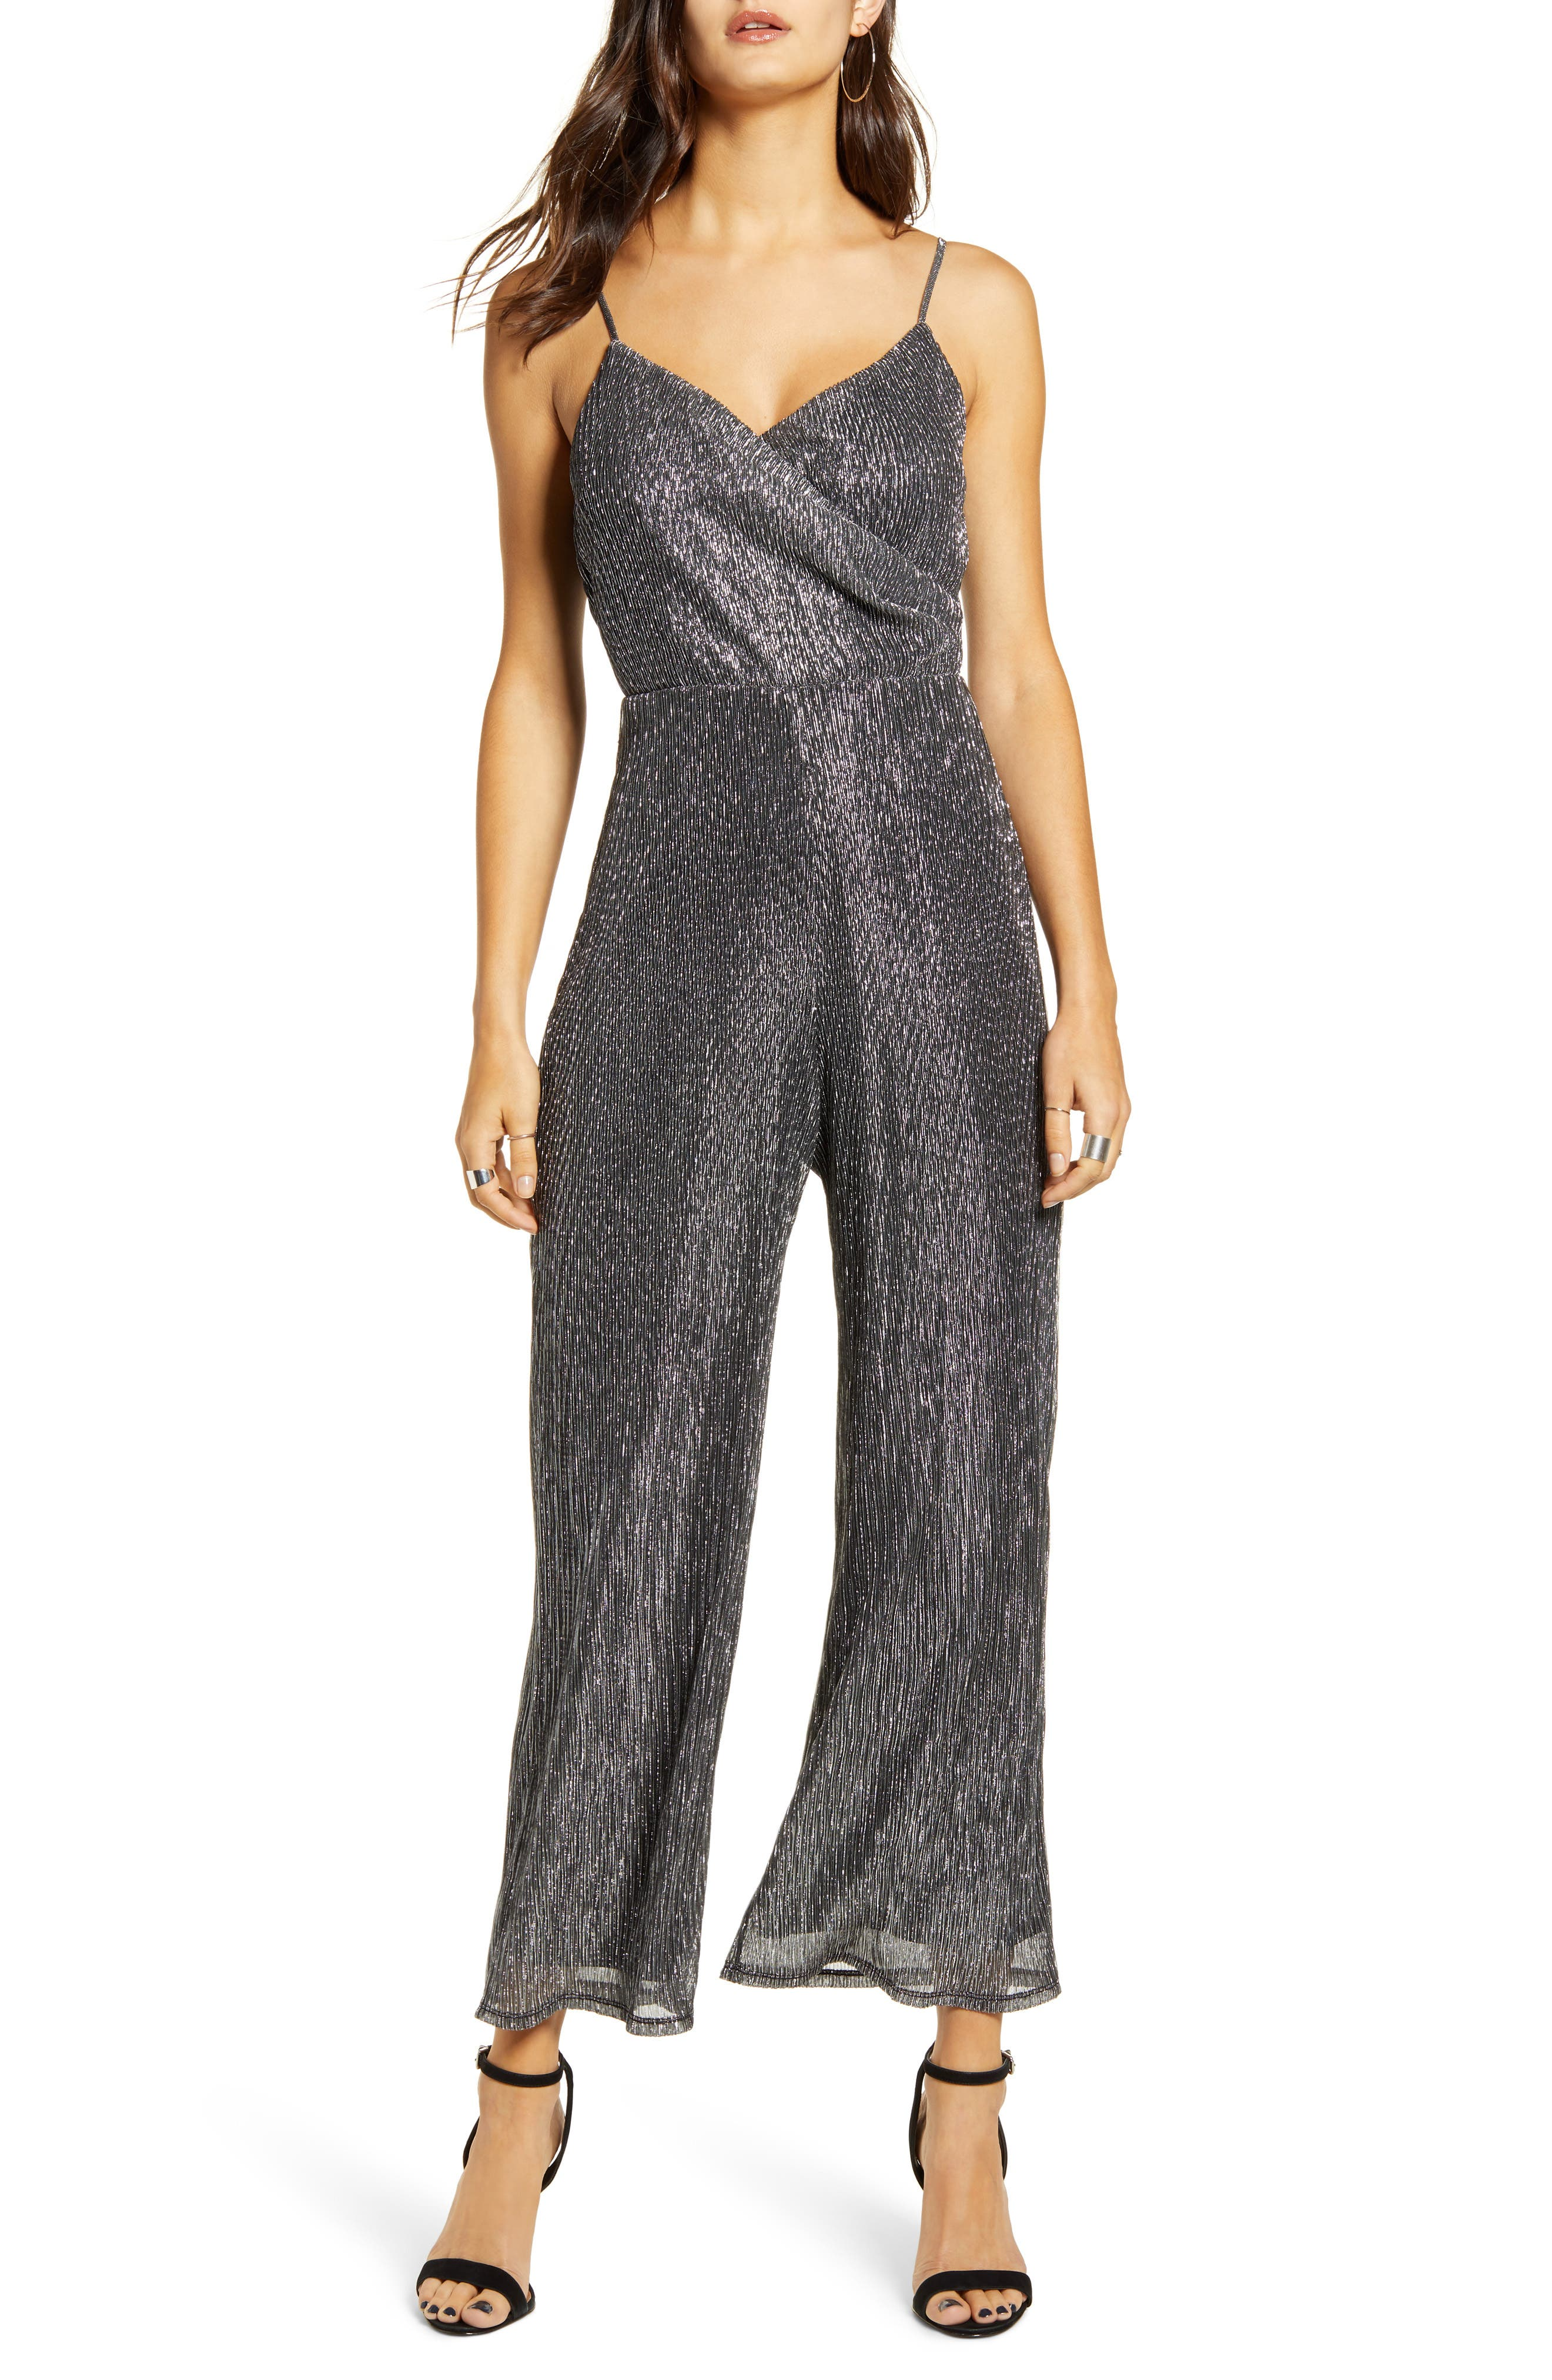 70s Jumpsuit | Disco Jumpsuits, Sequin Rompers Womens All In Favor Metallic Wrap Sleeveless Jumpsuit $38.98 AT vintagedancer.com